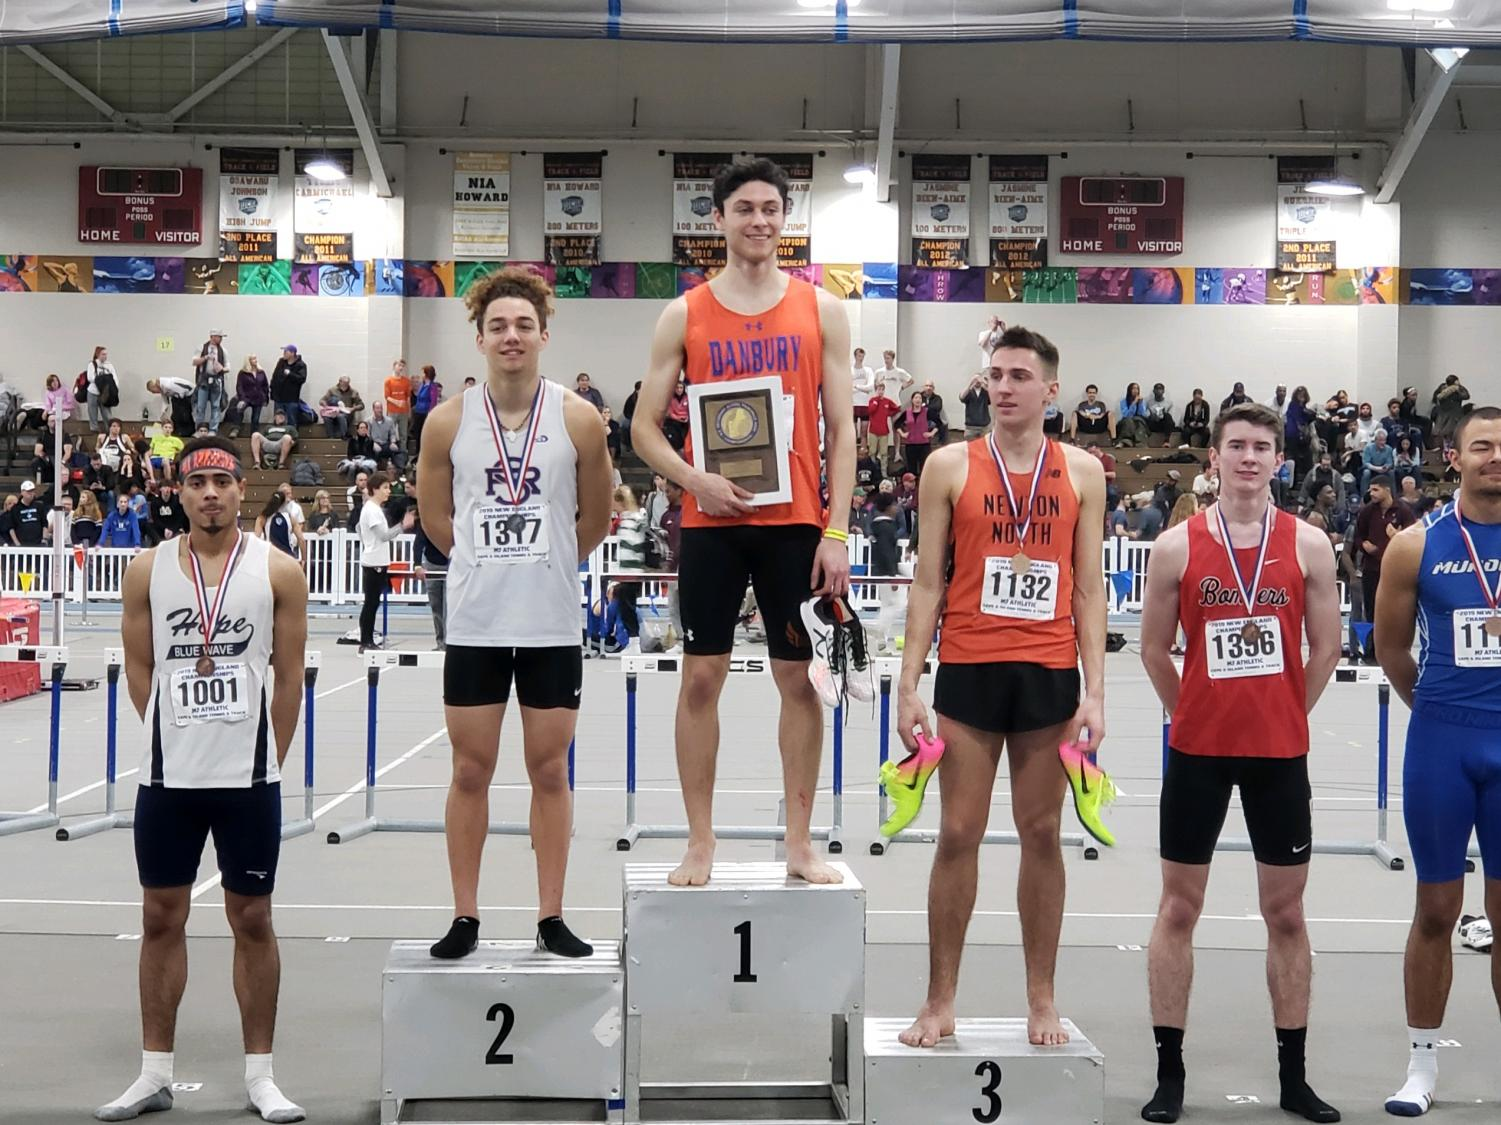 Senior track star Malcolm Going stands with pride after winning first place in the 600m during the indoor New England Championship in Boston on March 2.